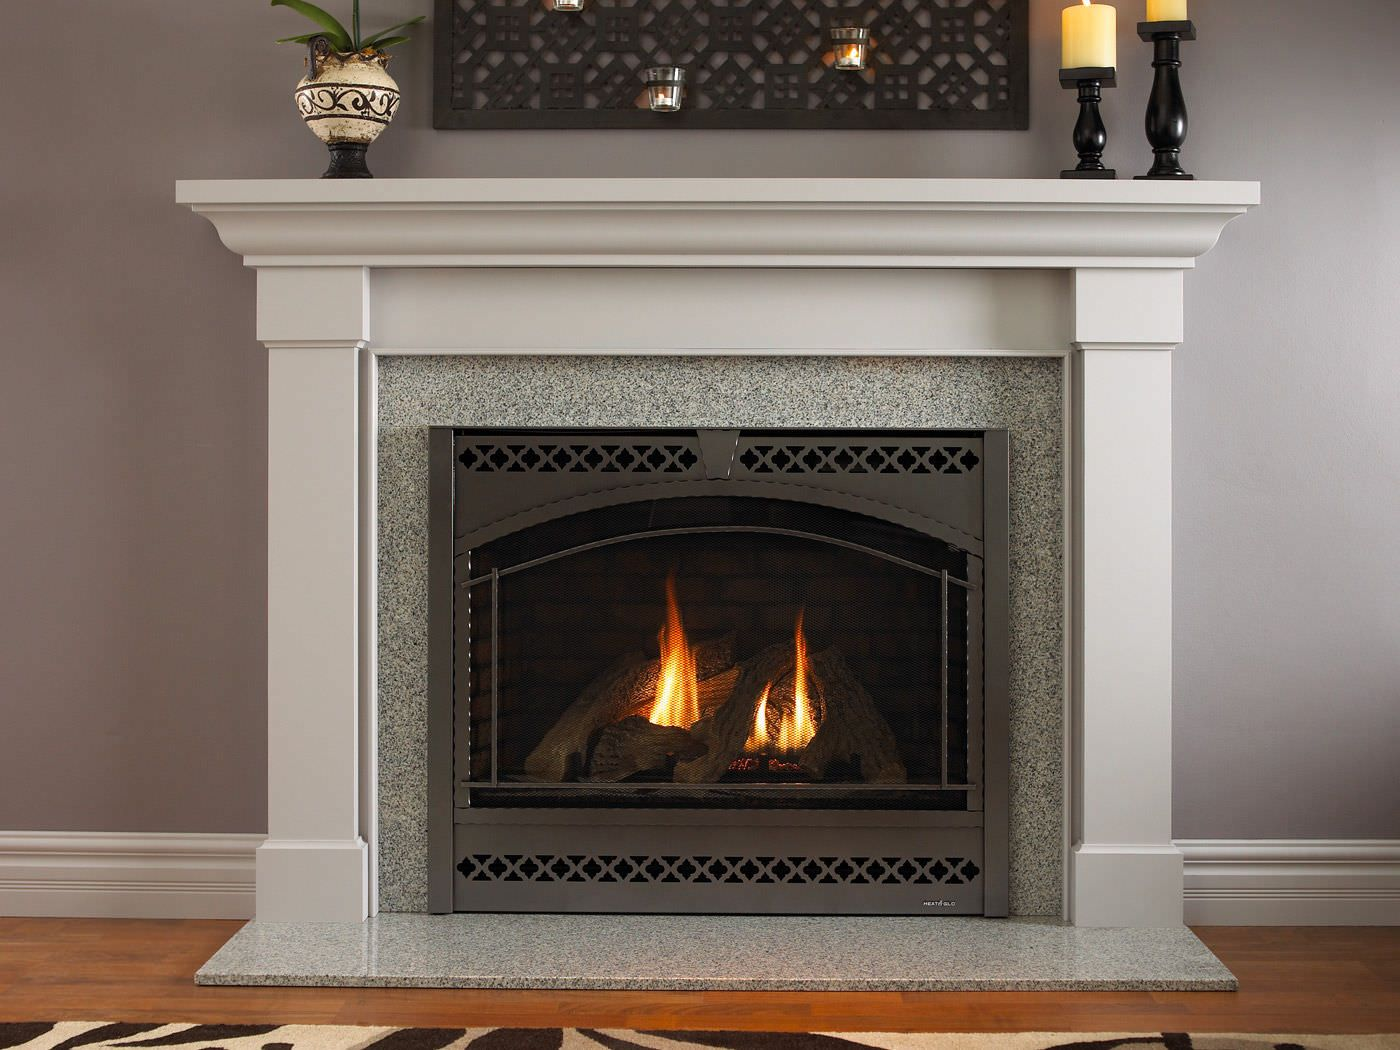 Whether You Live In California Or Vermont A Cozy Fireplace Pulls Together A Home T Contemporary Fireplace Designs Contemporary Fireplace Gas Fireplace Mantel